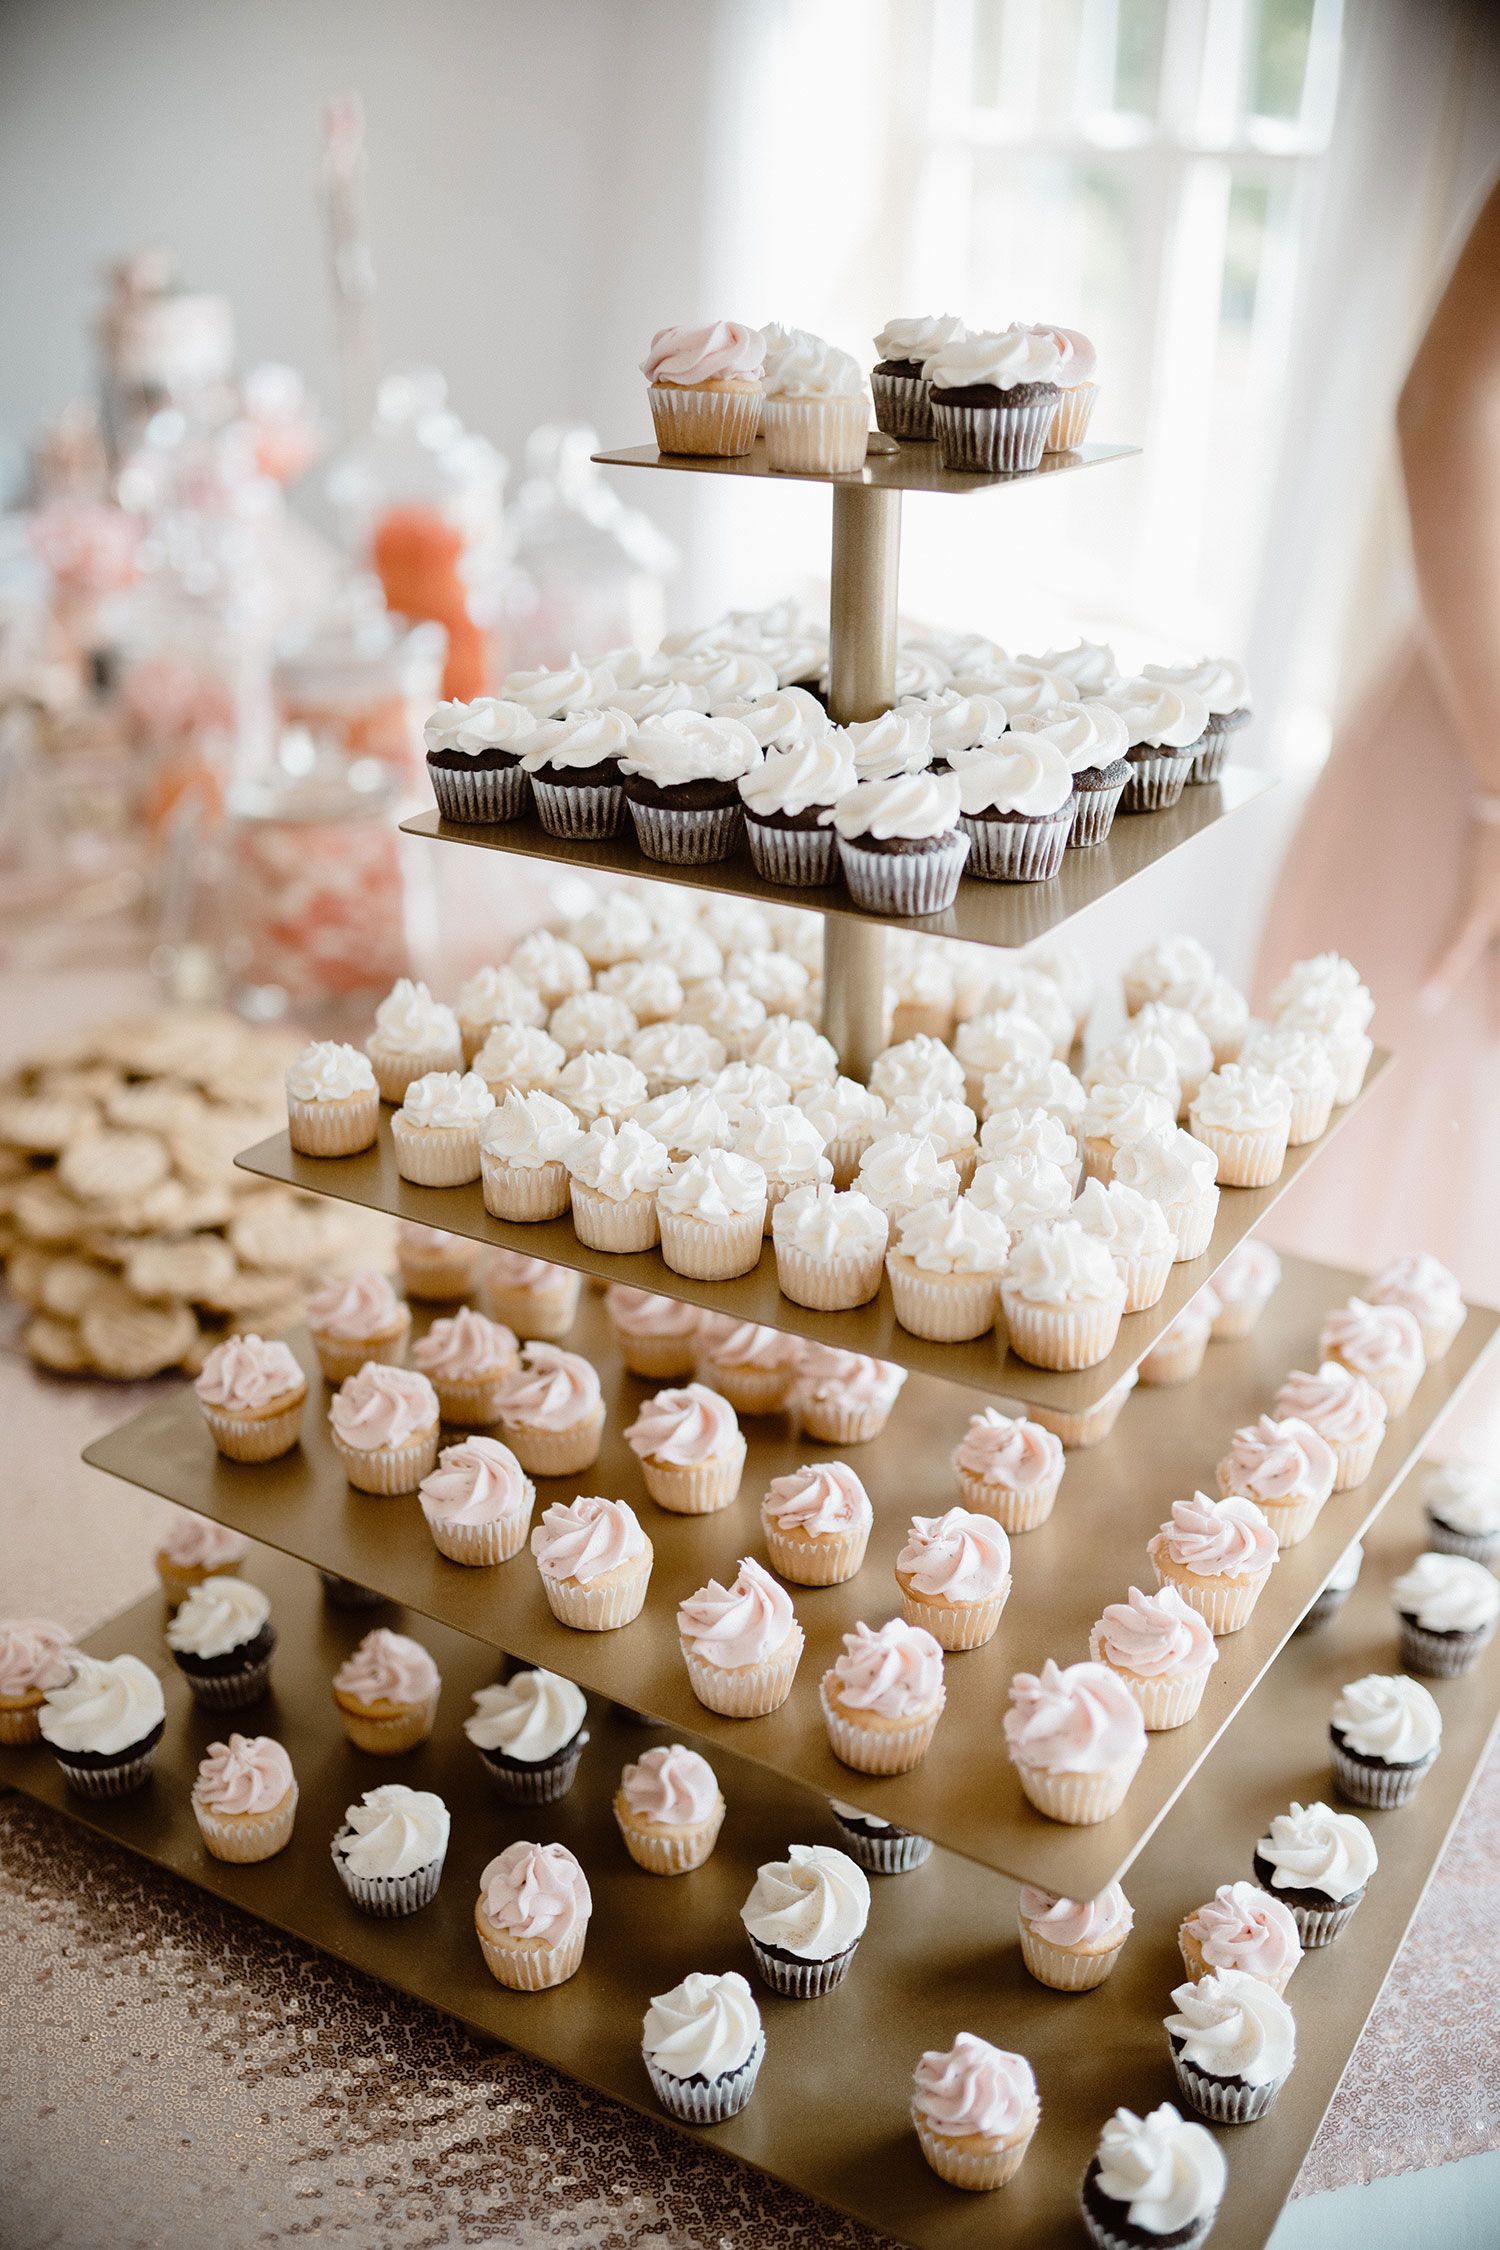 little-cupcakes-on-stand-wedding-summerset-winery-indianola-iowa-raelyn-ramey-photography.jpg